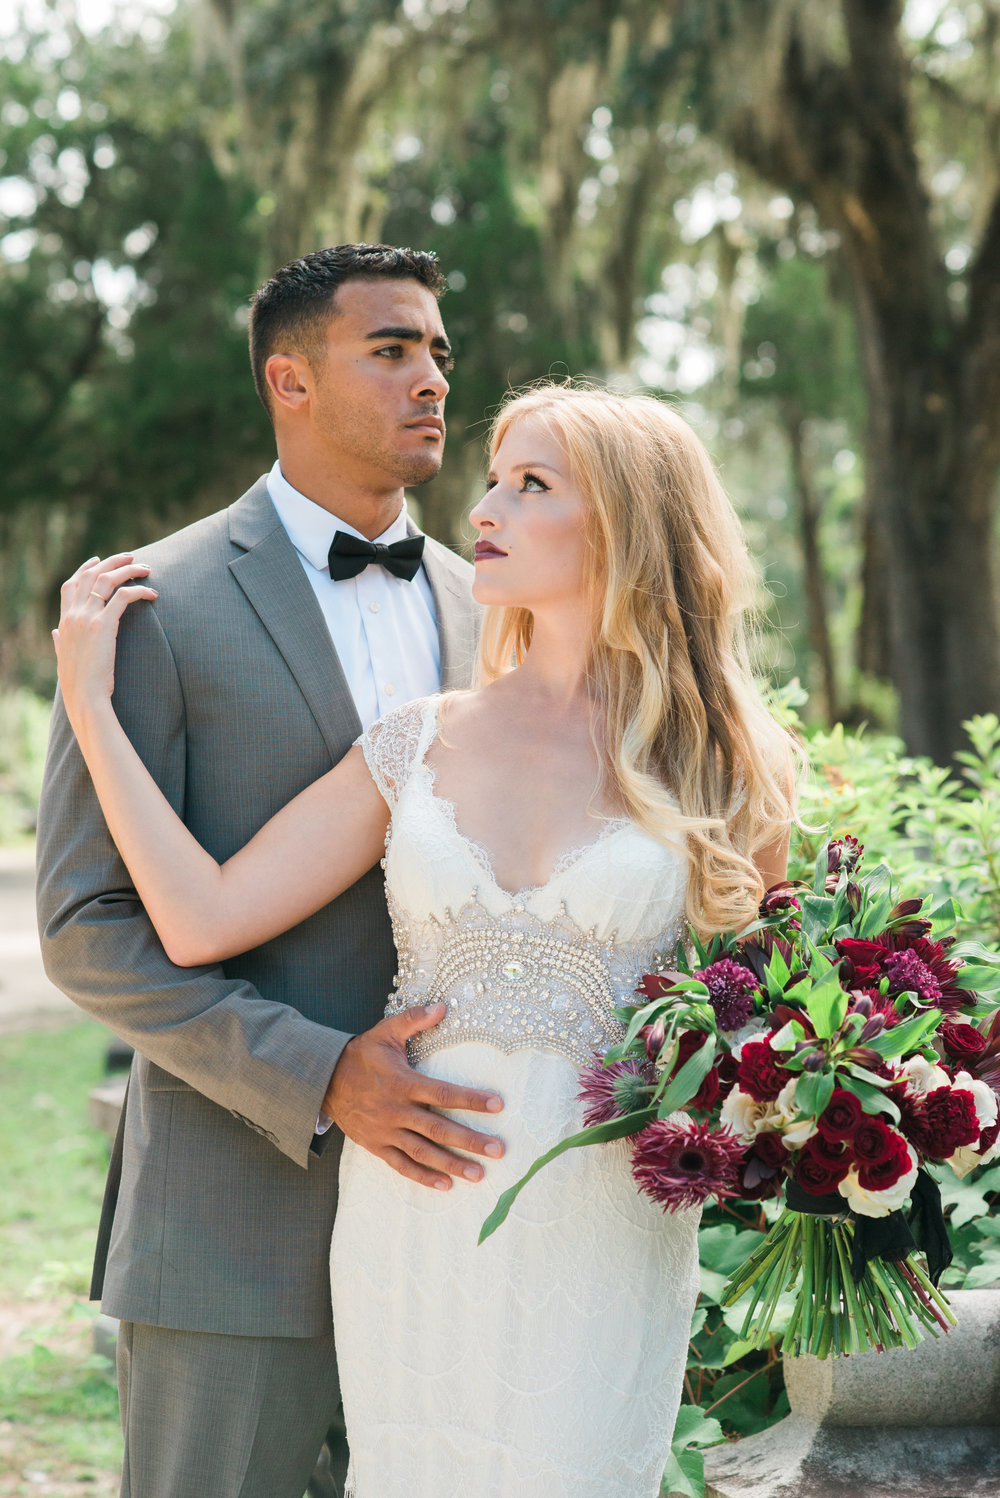 callie-beale-photography-Bonaventure-cemetery-michelle-royal-makeup-cemetery-wedding-ivory-and-beau-wedding-planning-anna-campbell-harper-savannah-bridal-boutique-savannah-wedding-dresses-savannah-weddings-11.jpg